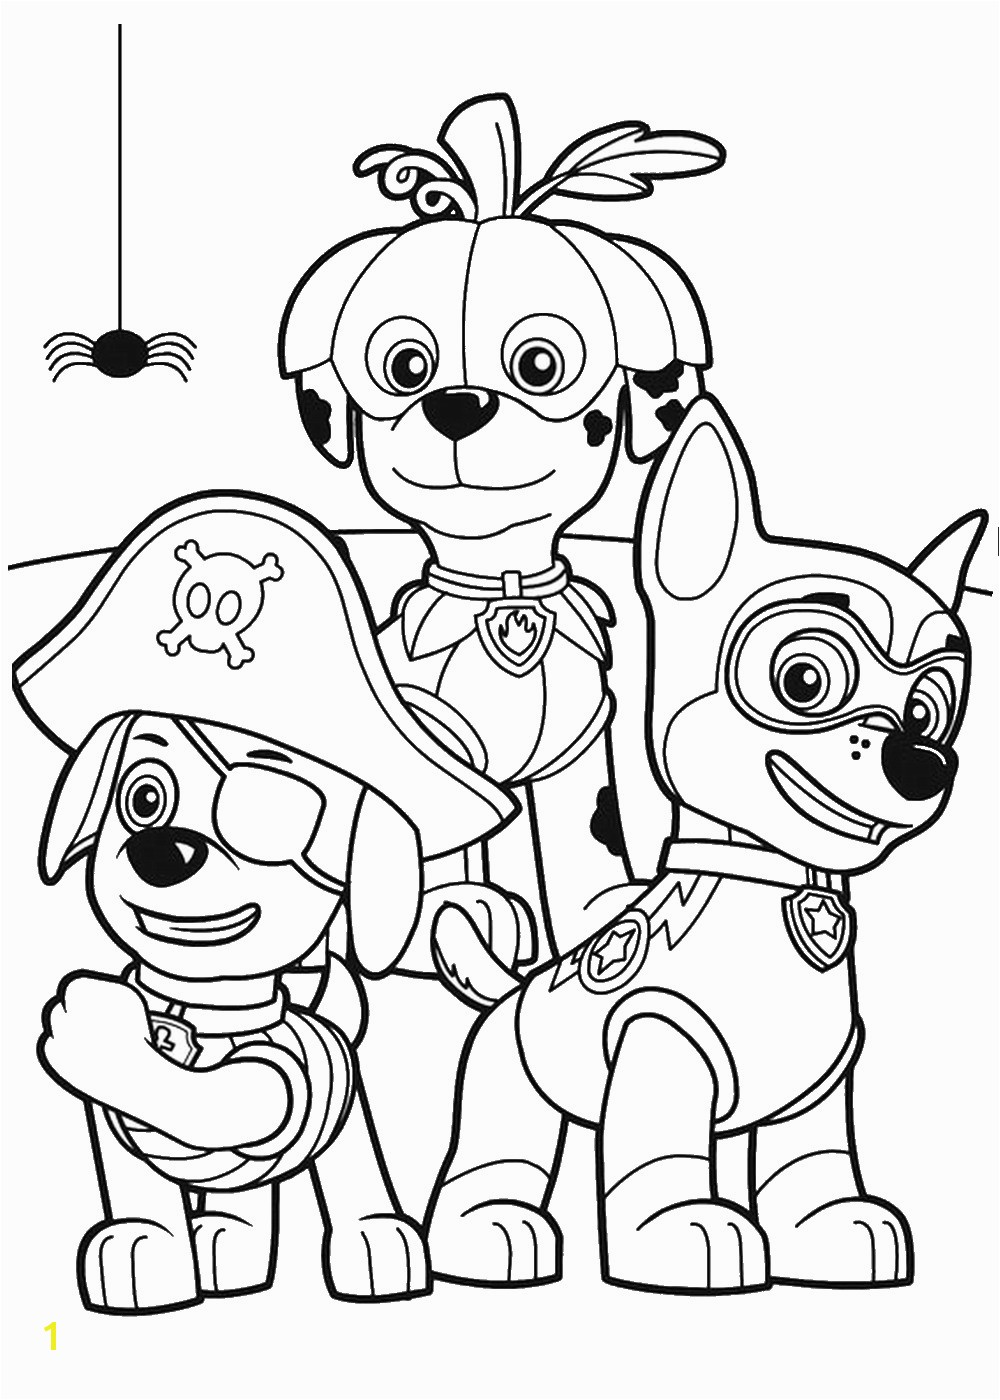 Great Nick Jr Coloring Pages To Print Out By Blaze